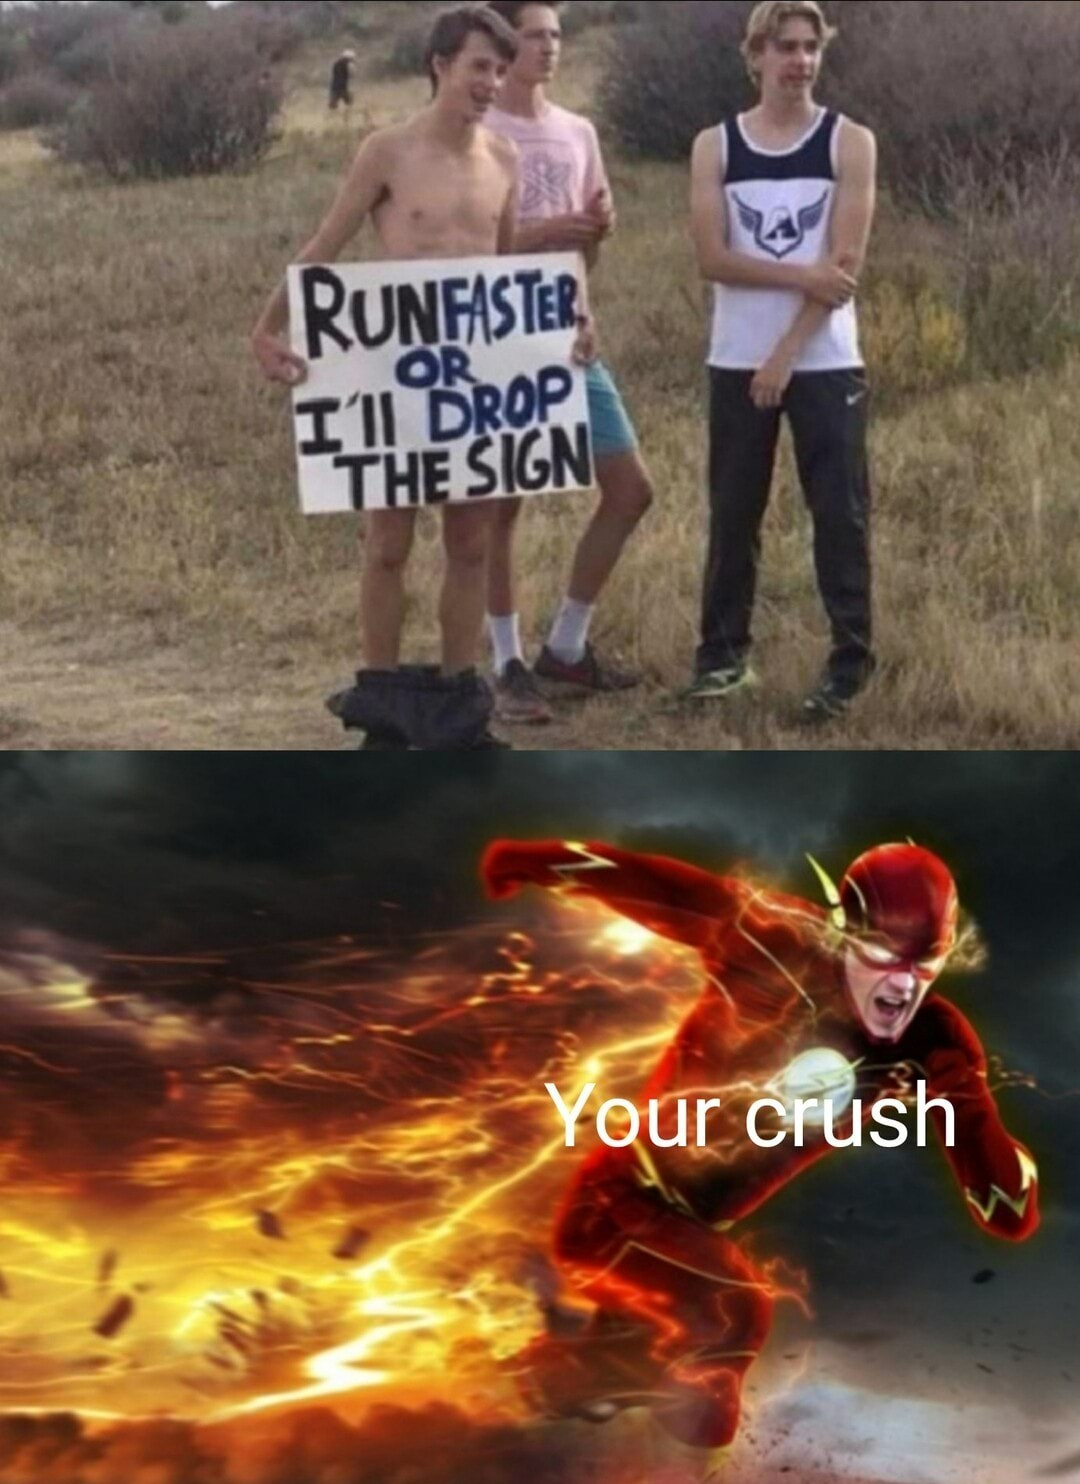 Go slower, I want him to drop the sign - meme